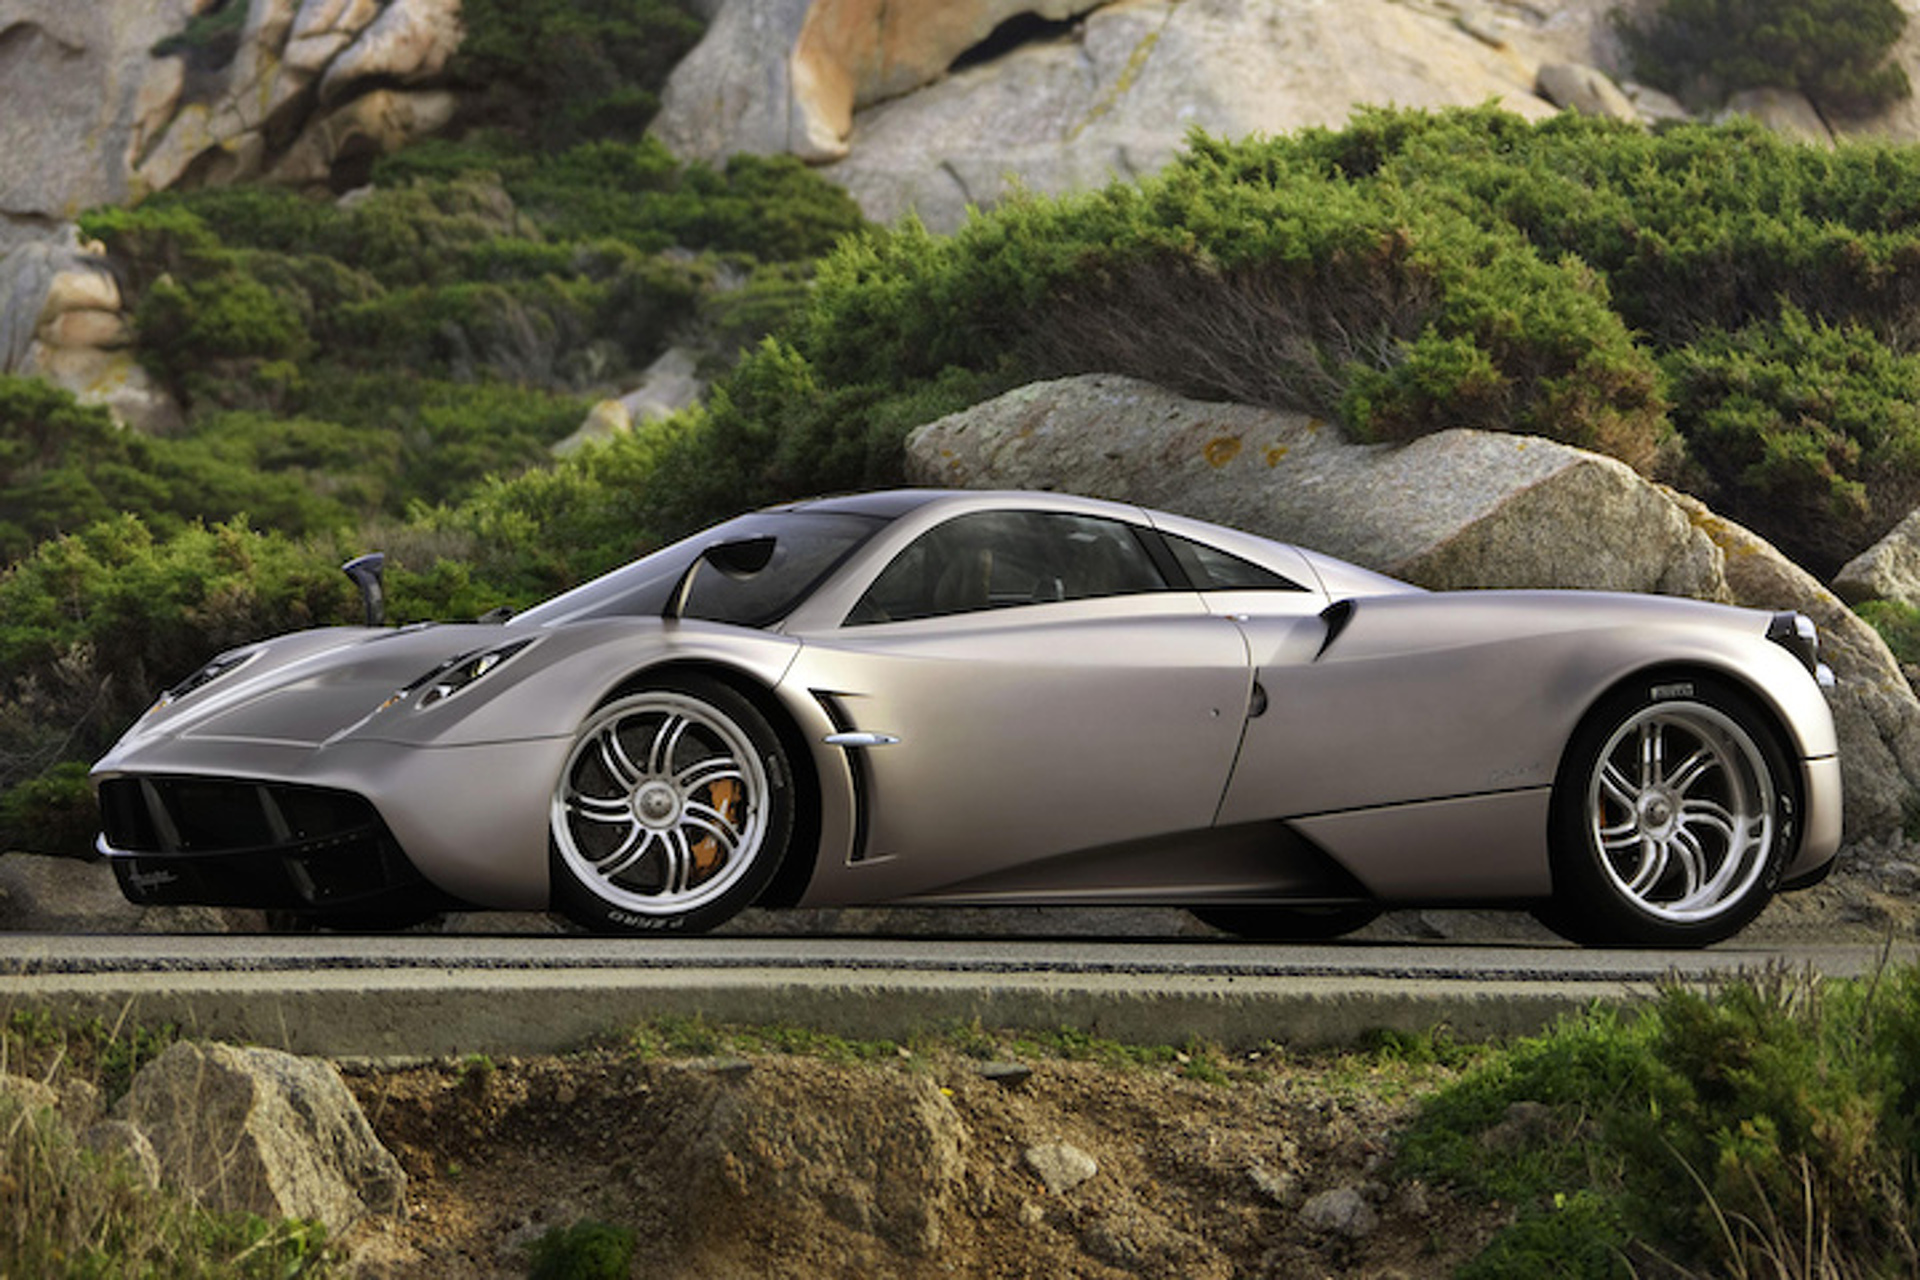 The Pagani Huayra Will Go Topless at Pebble Beach